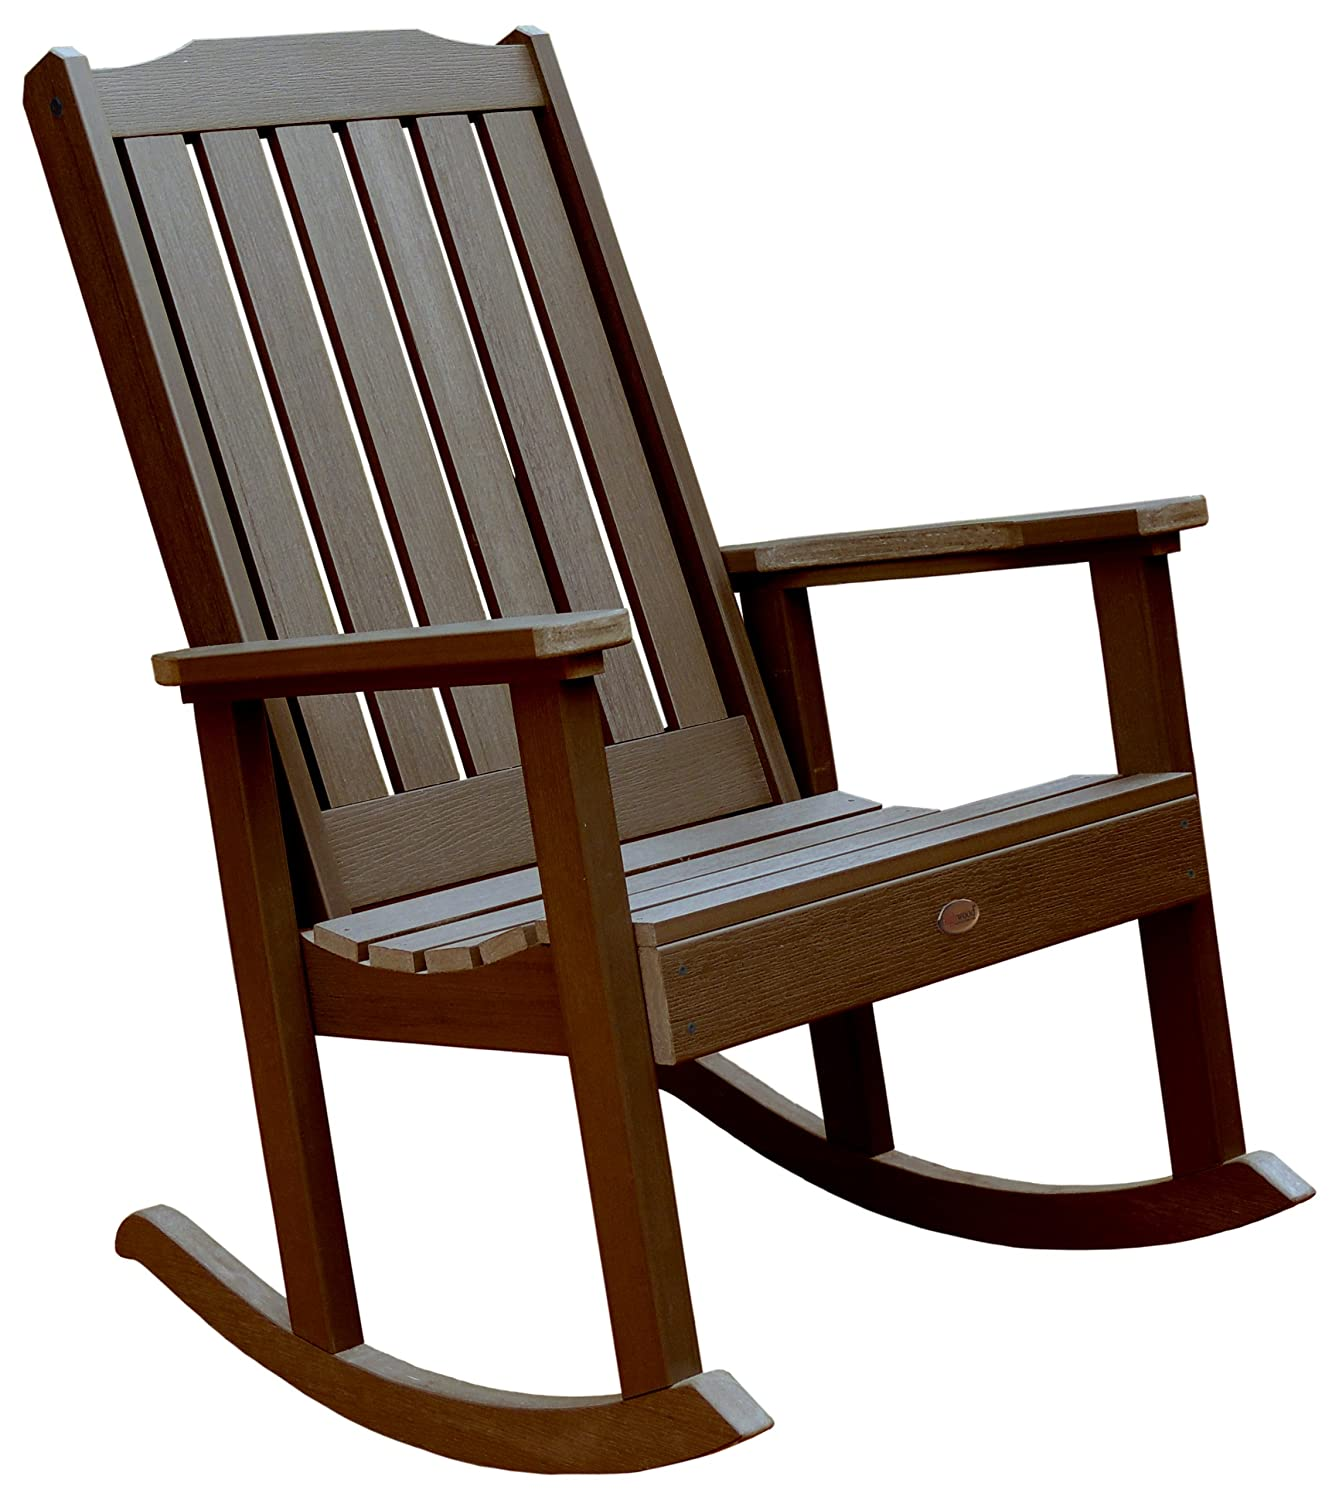 Rocky Chair Outdoor Rocking Chairs For Heavy People For Big And Heavy